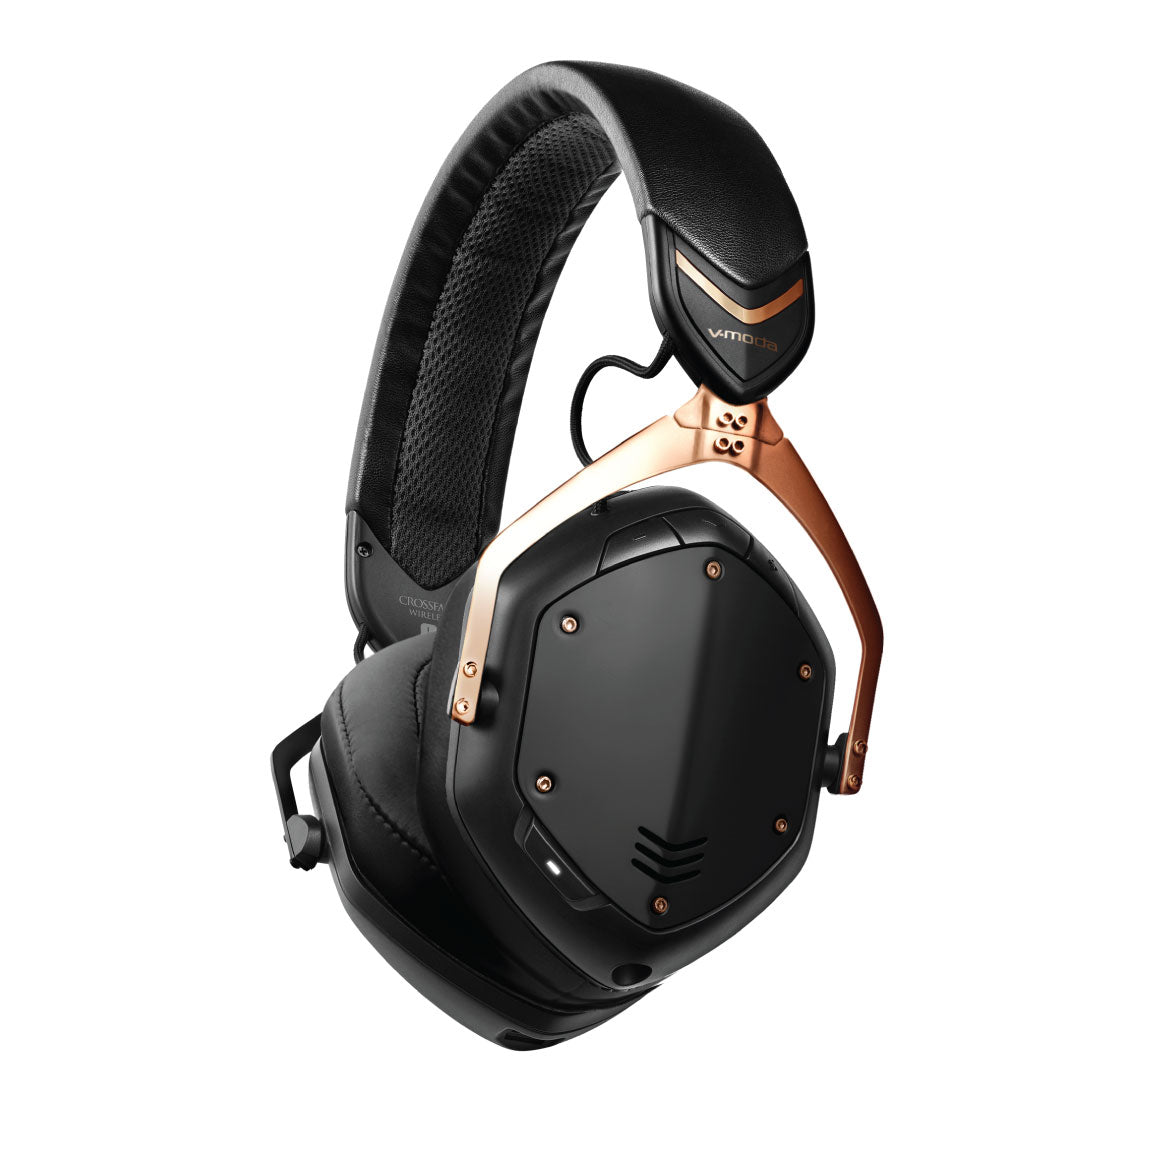 V-MODA - Crossfade 2 Wireless Codex Editionvs competitors